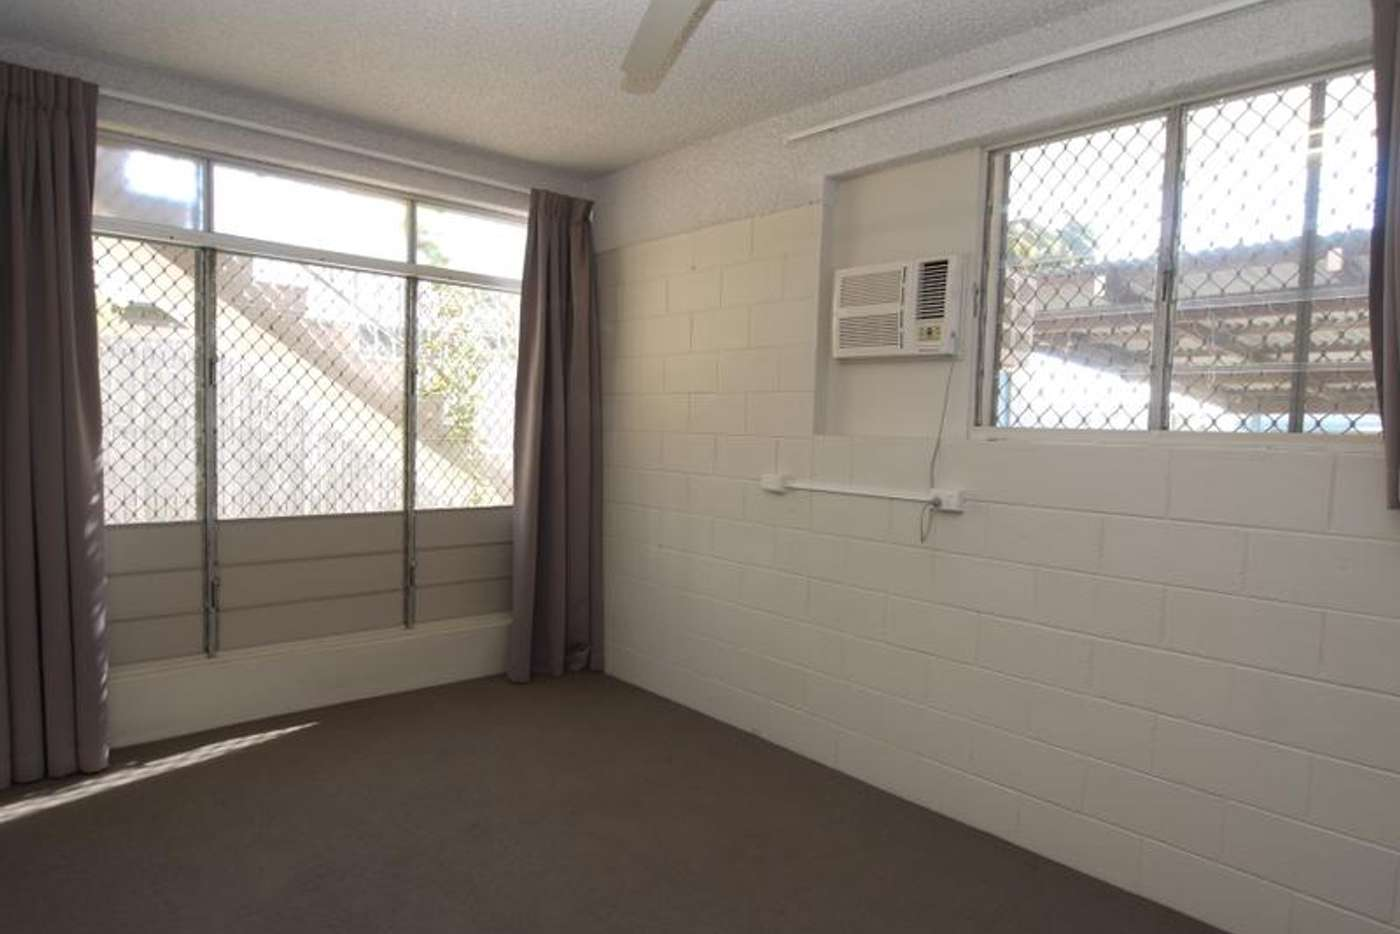 Sixth view of Homely unit listing, 6/9 Rose Street, North Ward QLD 4810